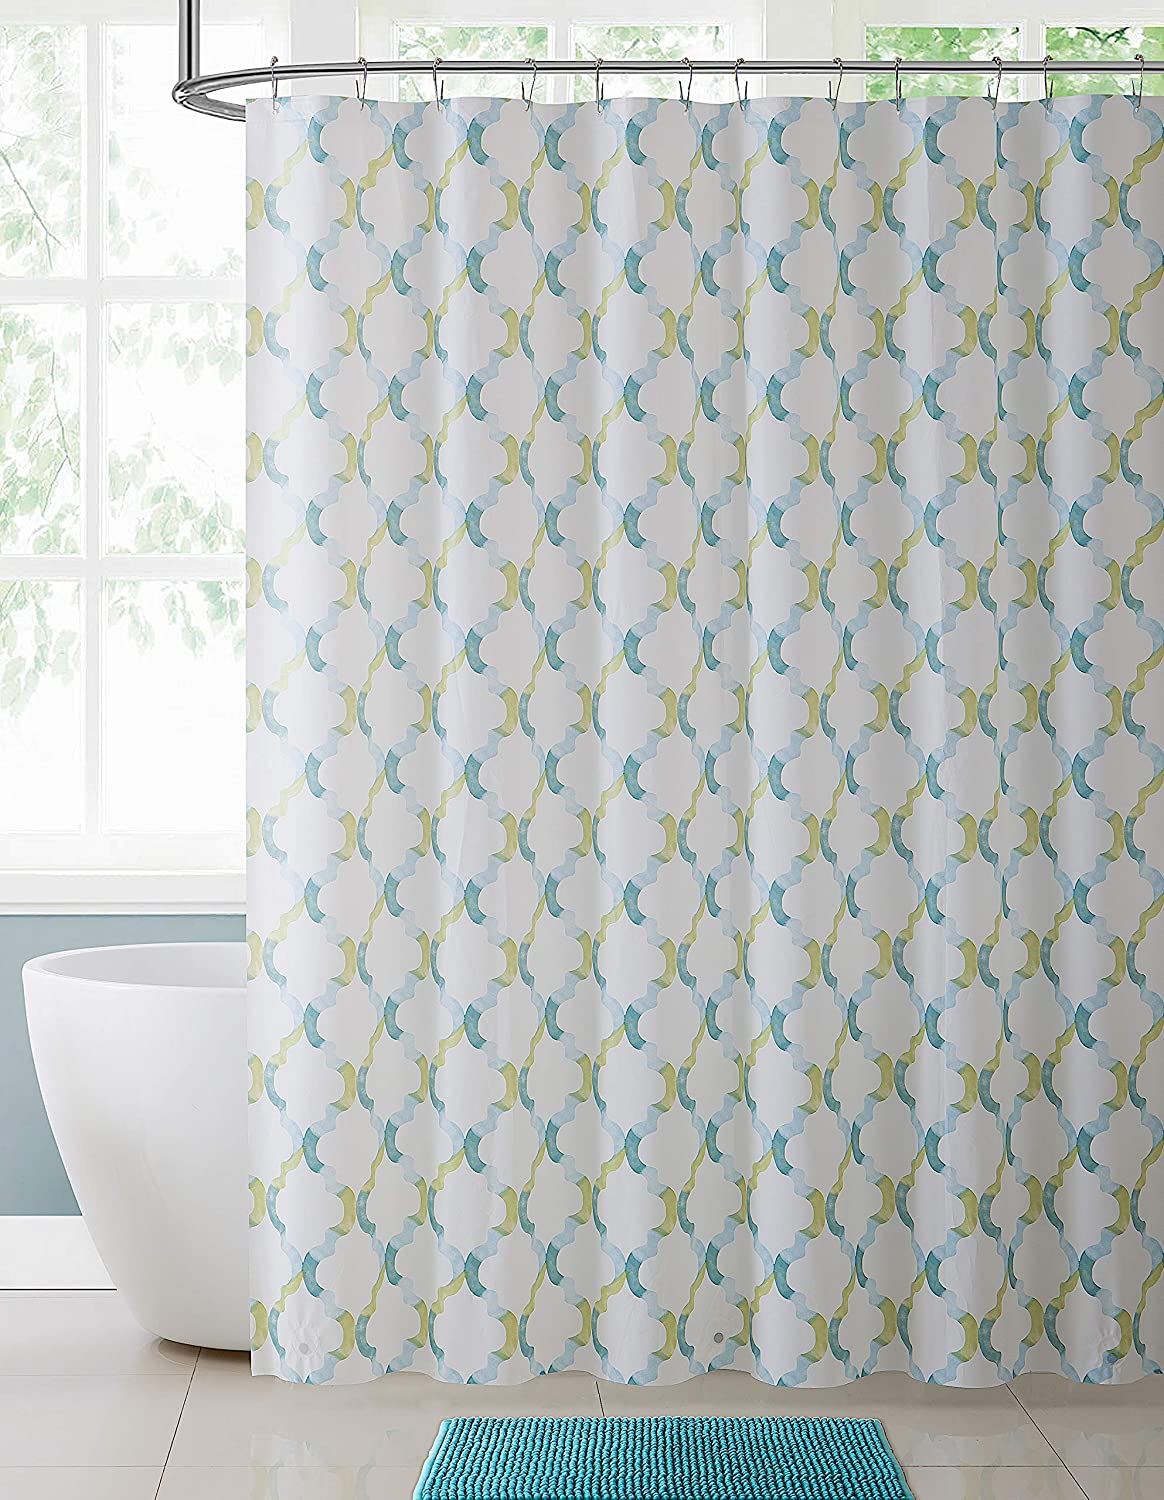 Floral Geometric Patterned VCNY Home Teal Blue Gray Beige Fabric Shower Curtain